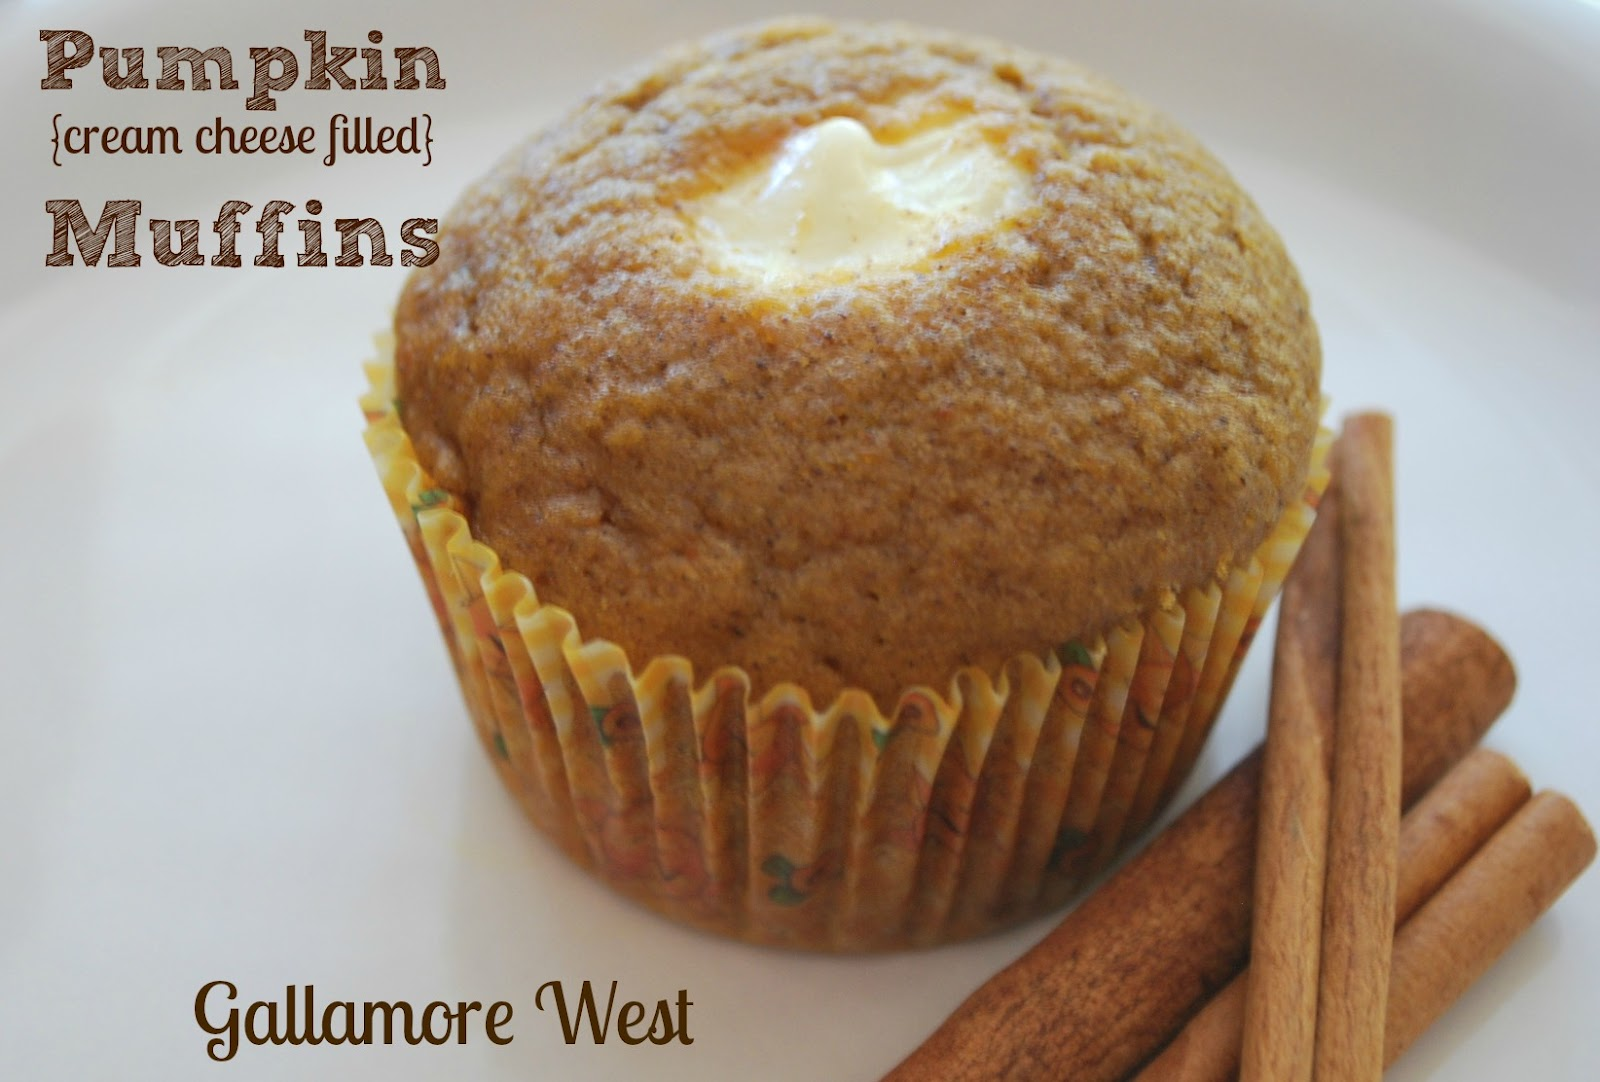 gallamore west: Pumpkin Cream Cheese Filled Muffins